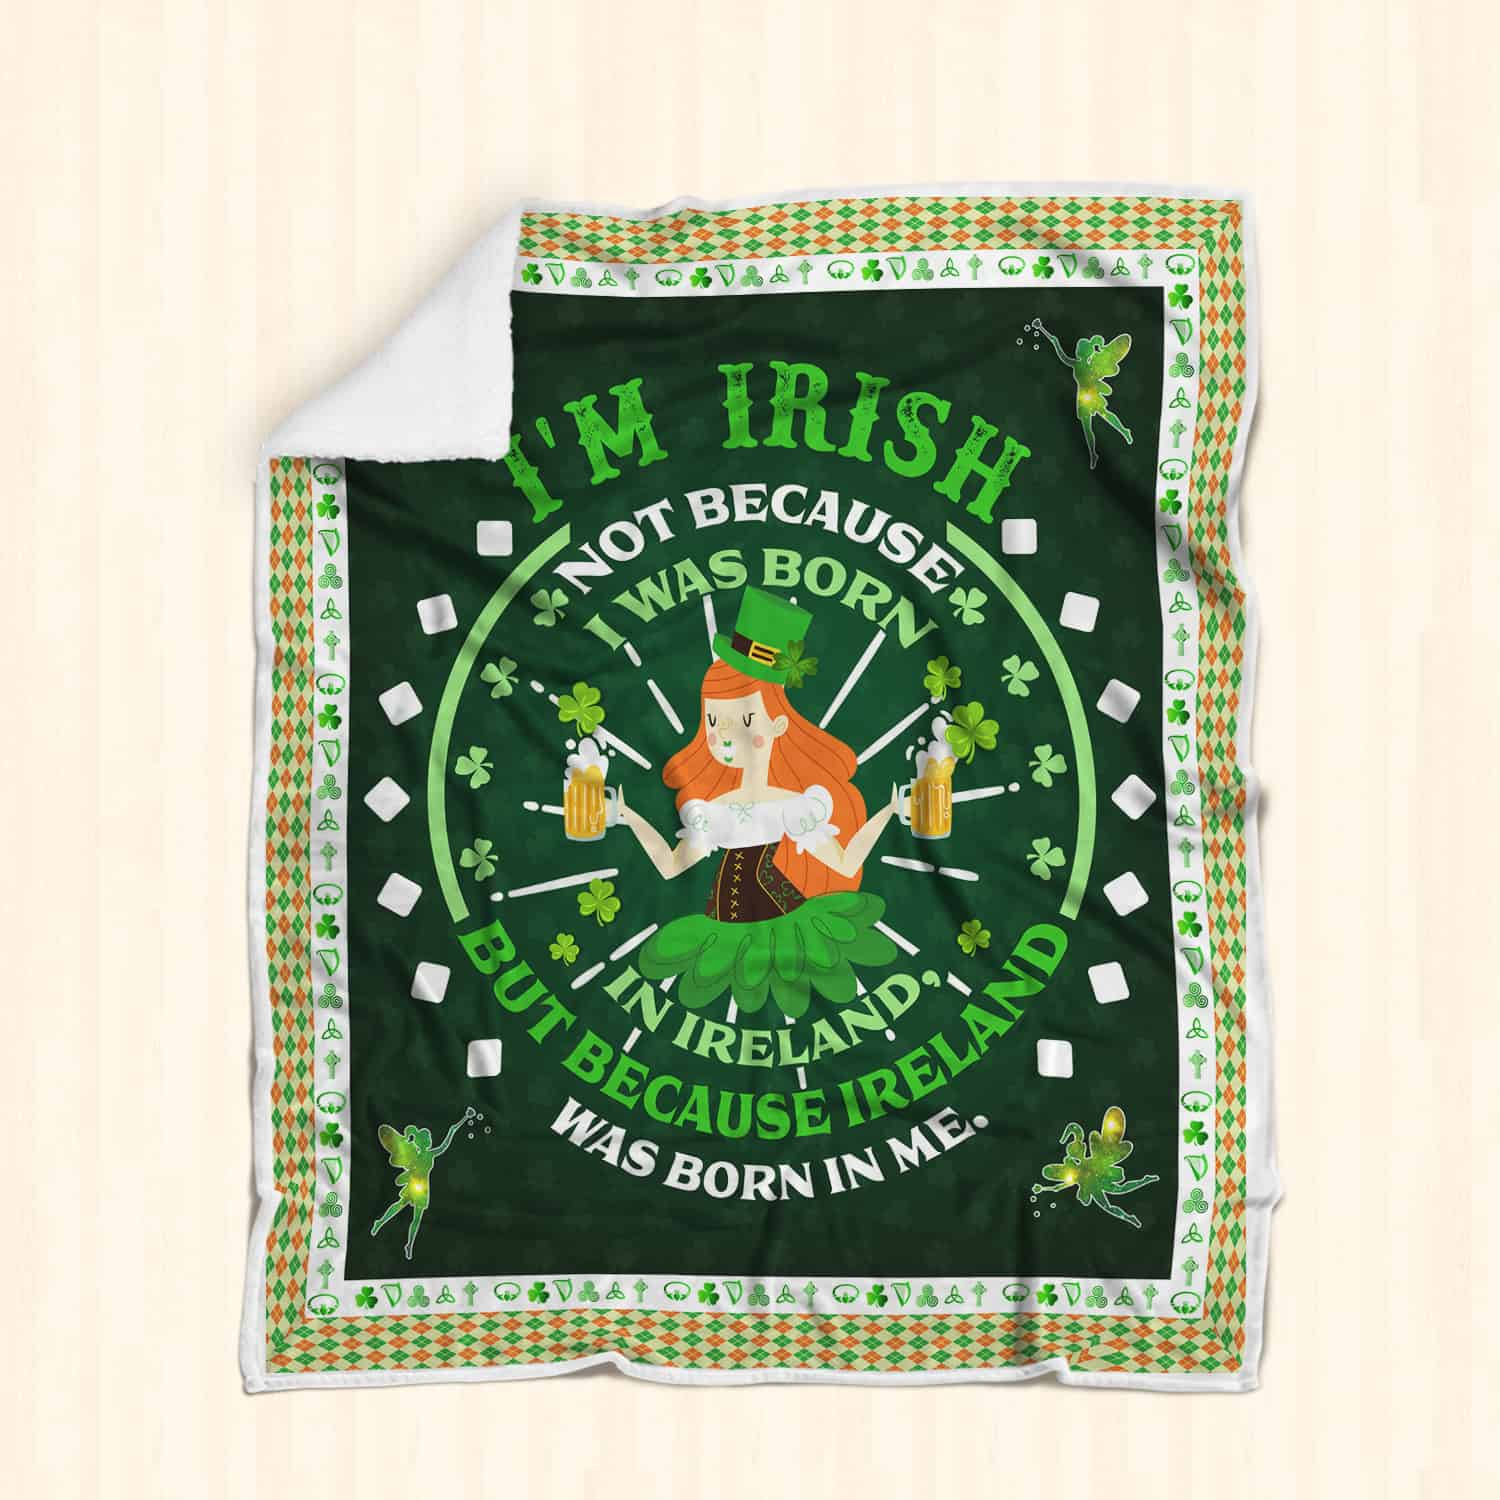 st patricks day ireland was born in me all over printed blanket 2